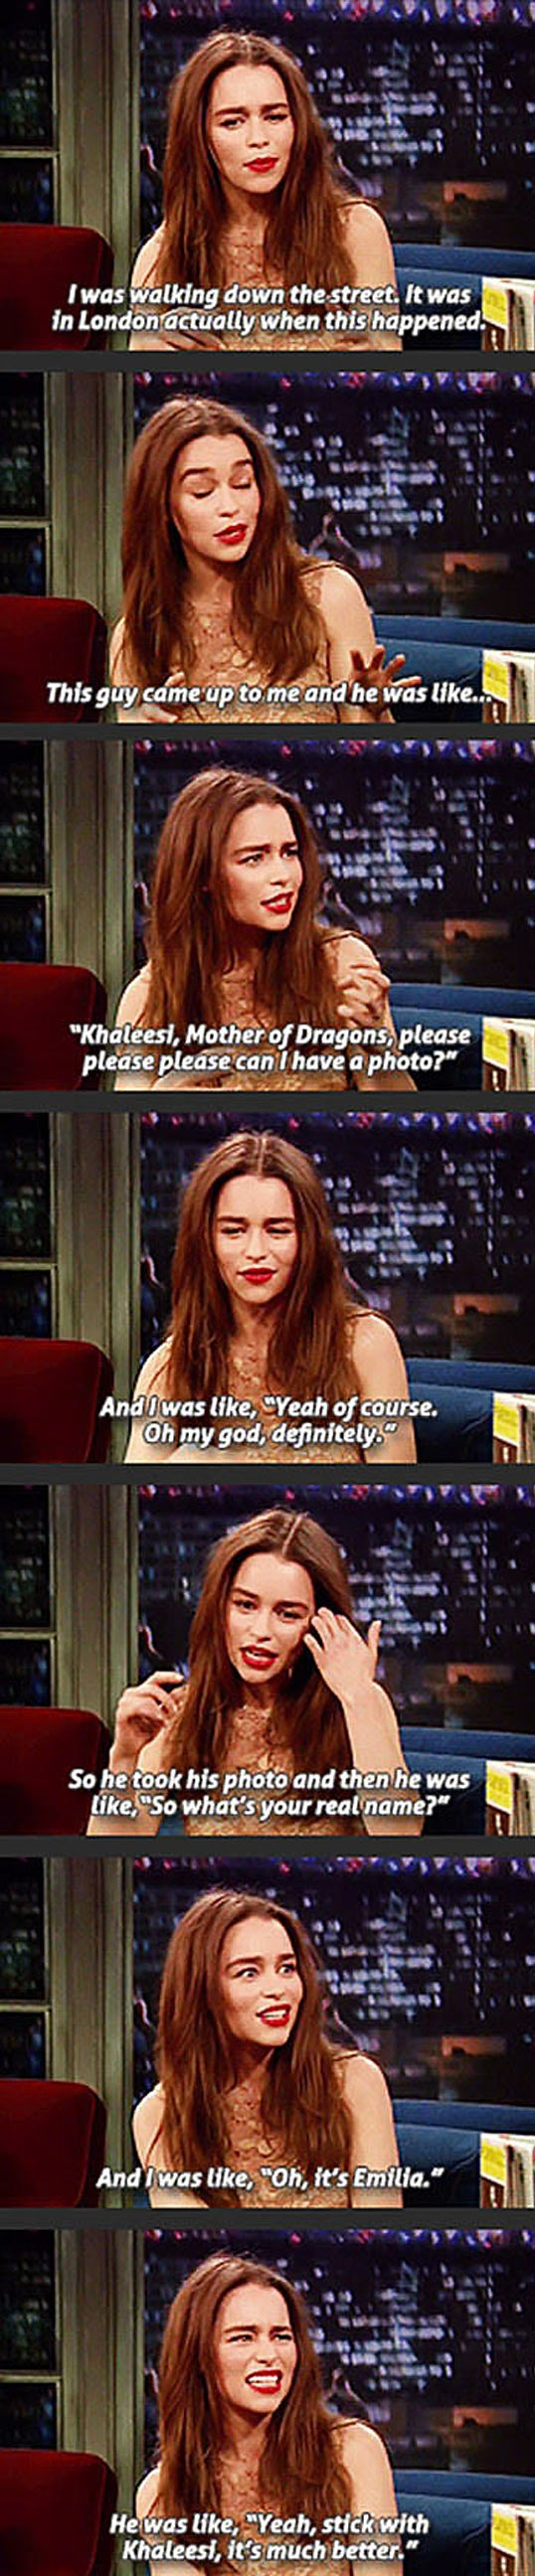 cool-Emilia-Clarke-Game-Thrones-fan